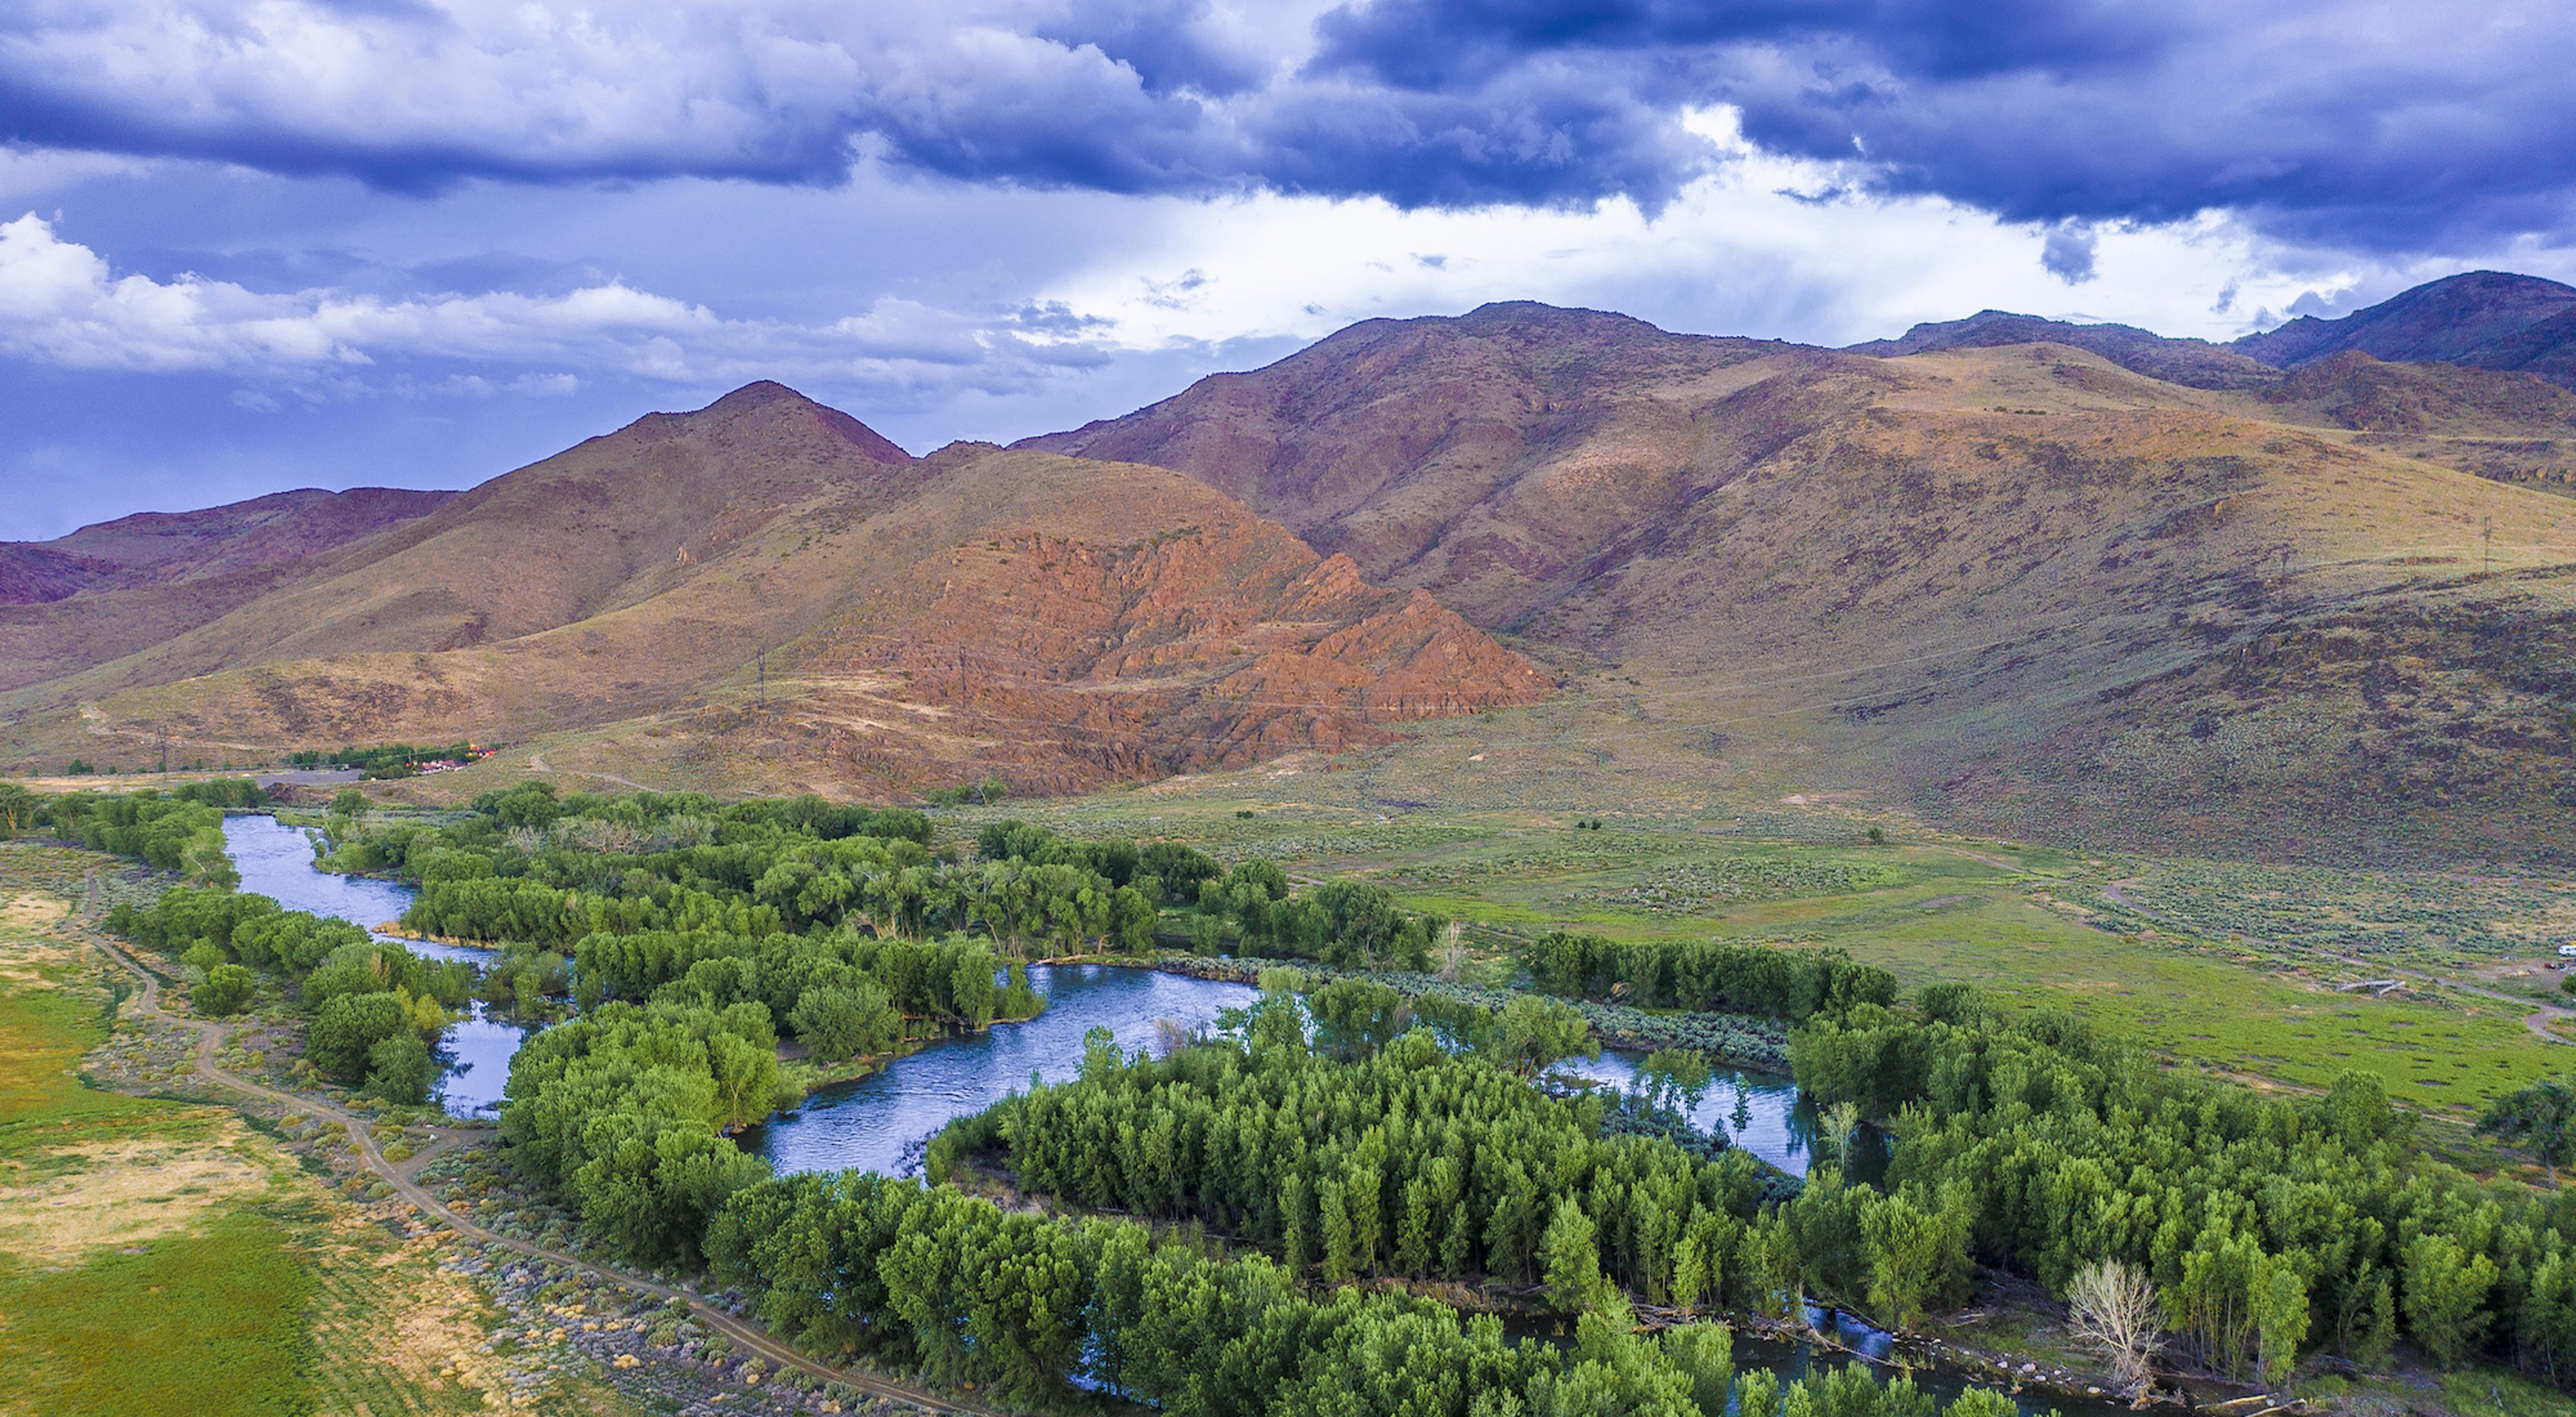 Aerial view of cottonwood forests along the Truckee River